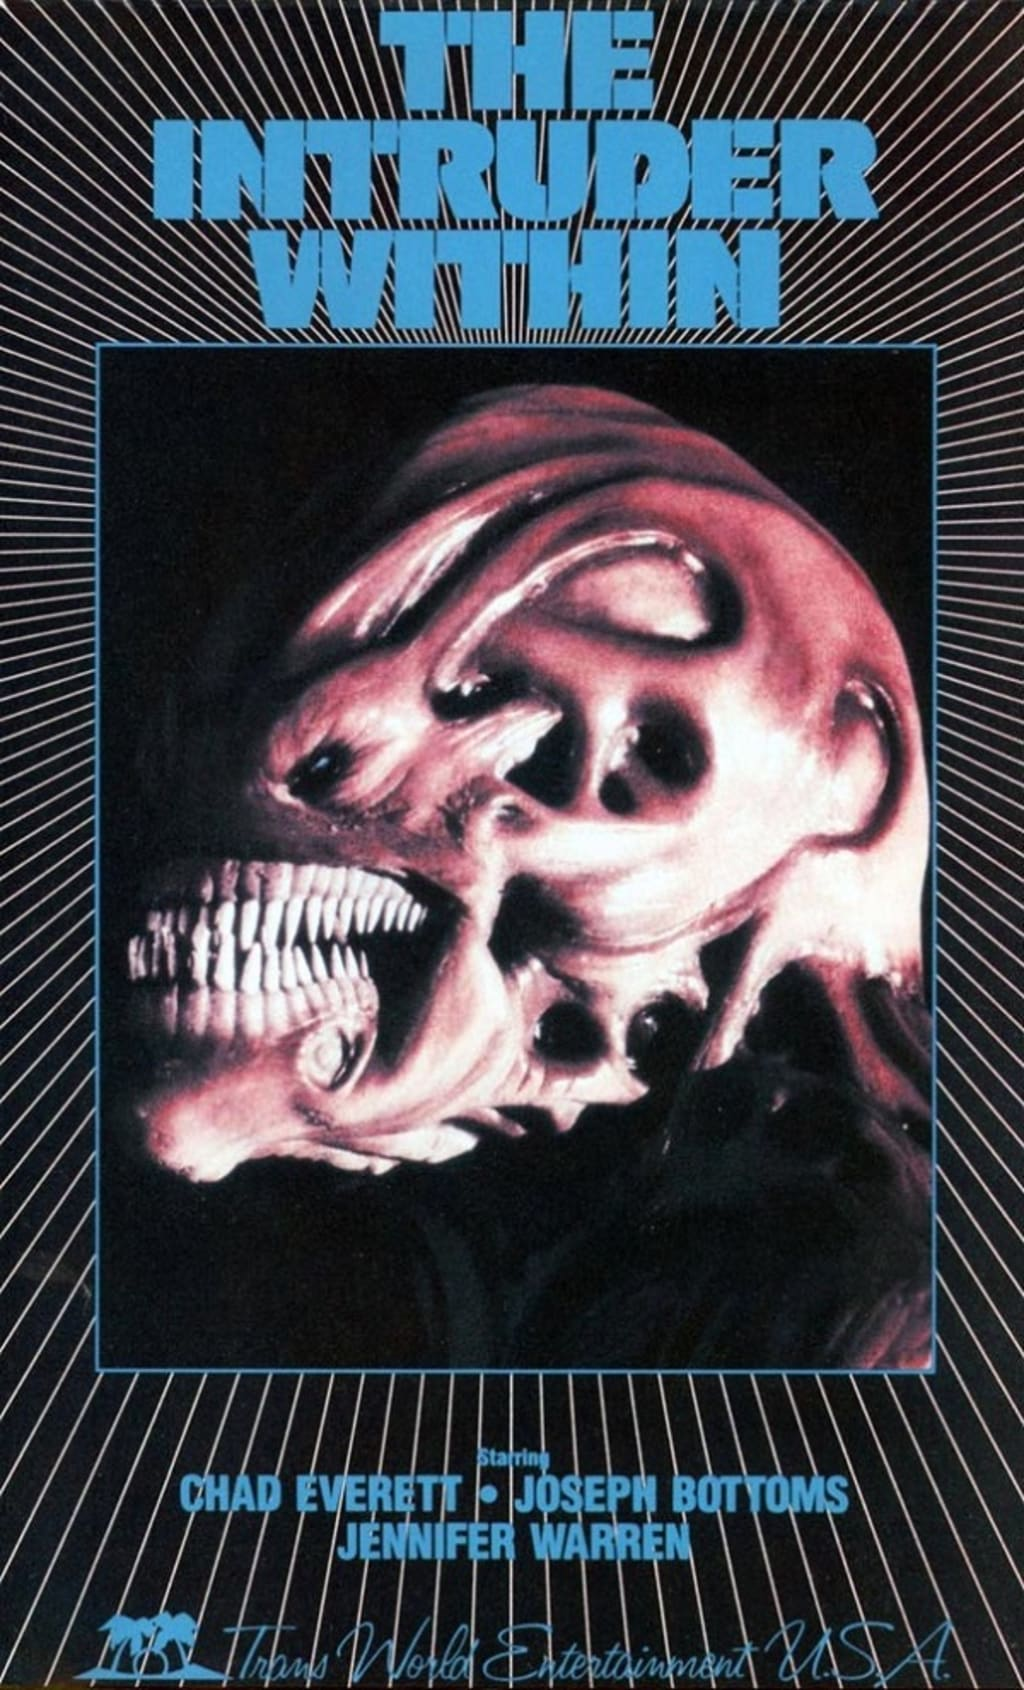 Reed Alexander's Horror Review of 'The Intruder Within' (1981)